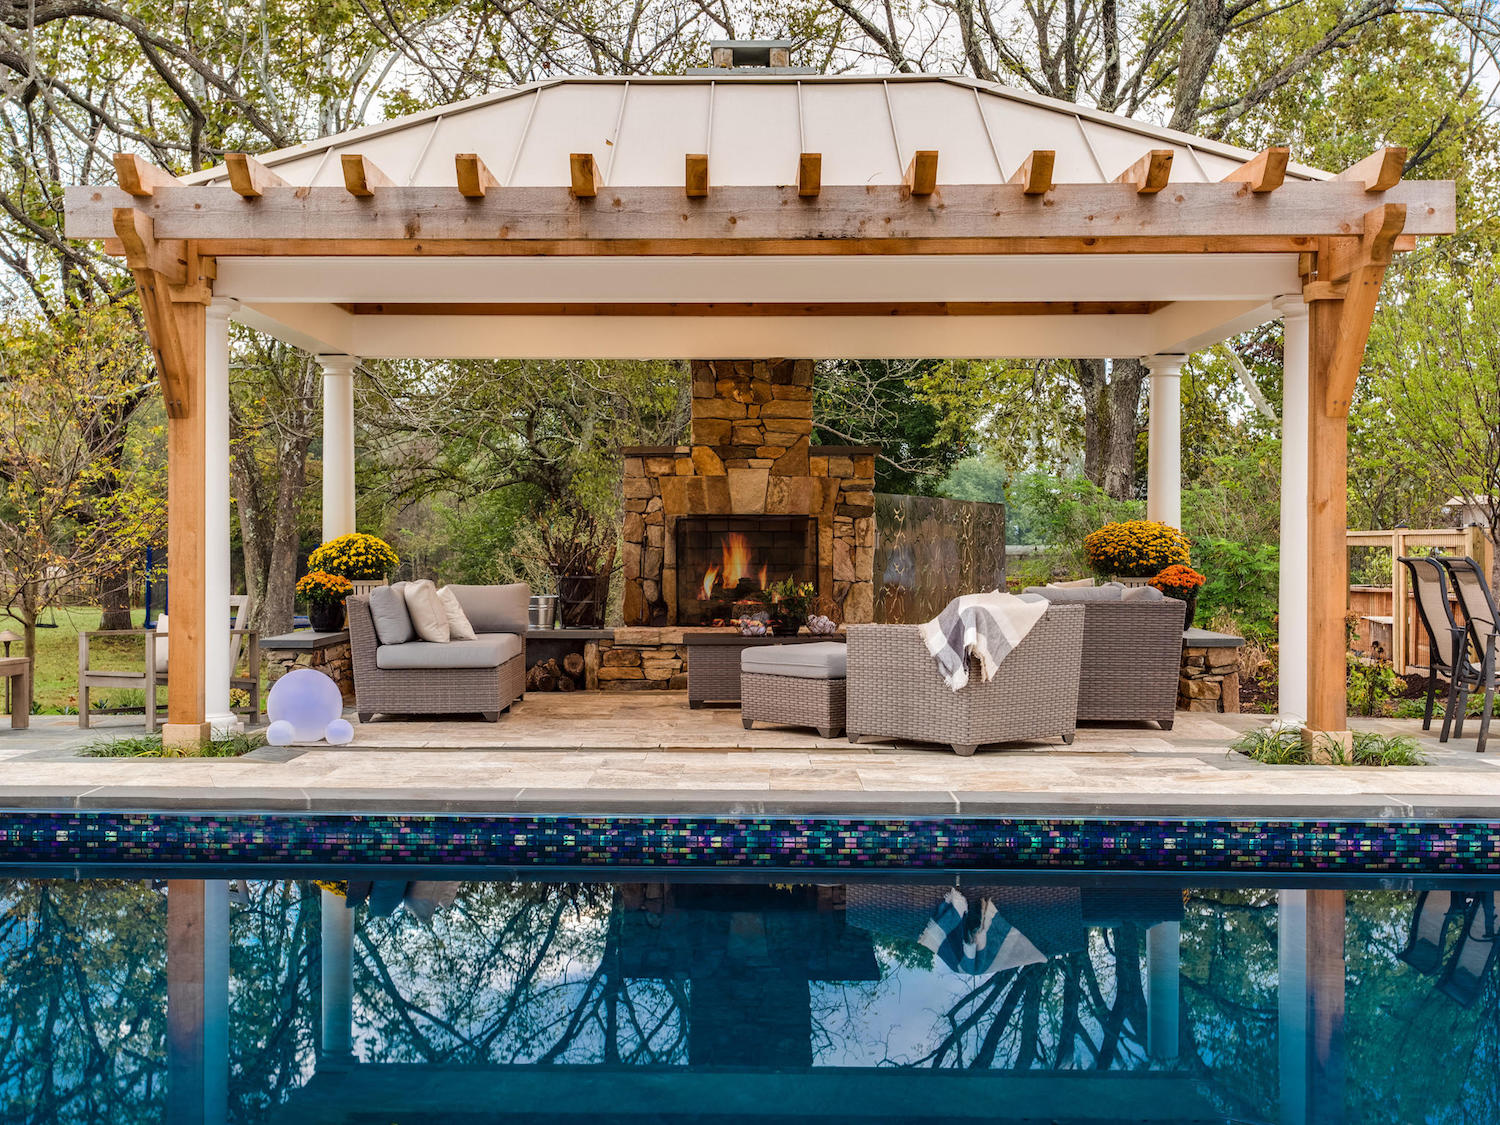 outdoor fireplace, pool, and pavilion landscape design in Warrenton, VA